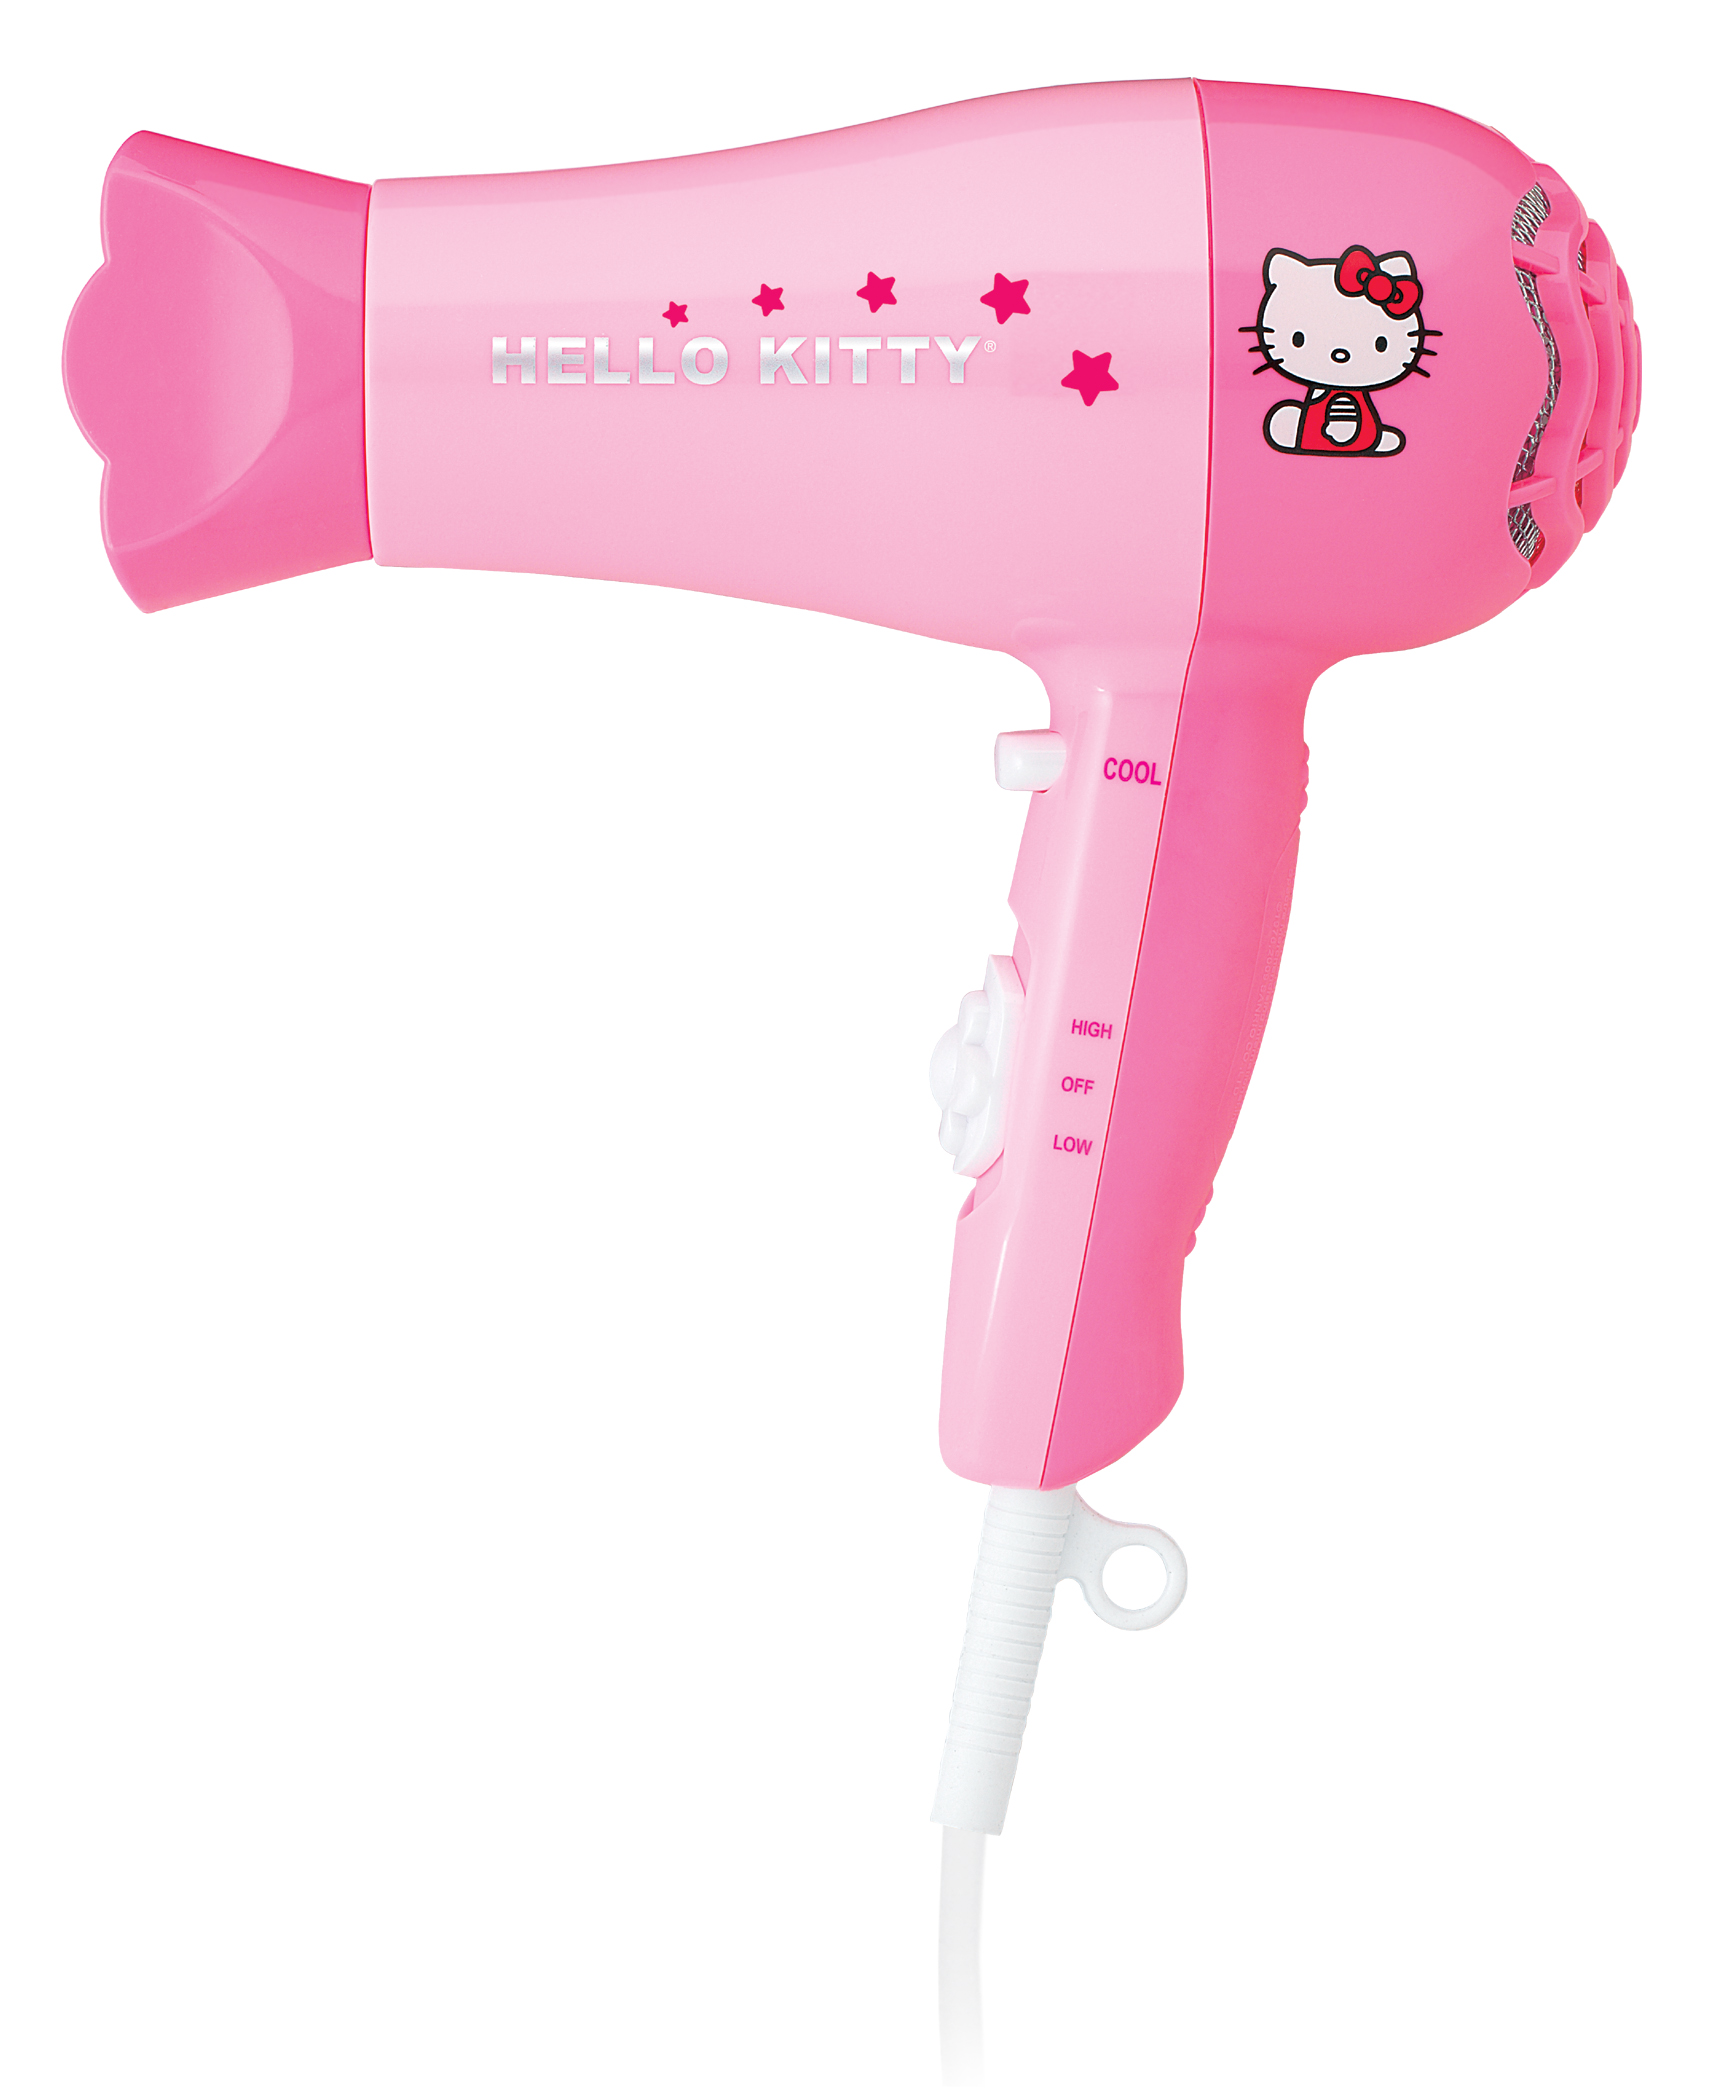 Hello Kitty Ceramic Curling Iron Review